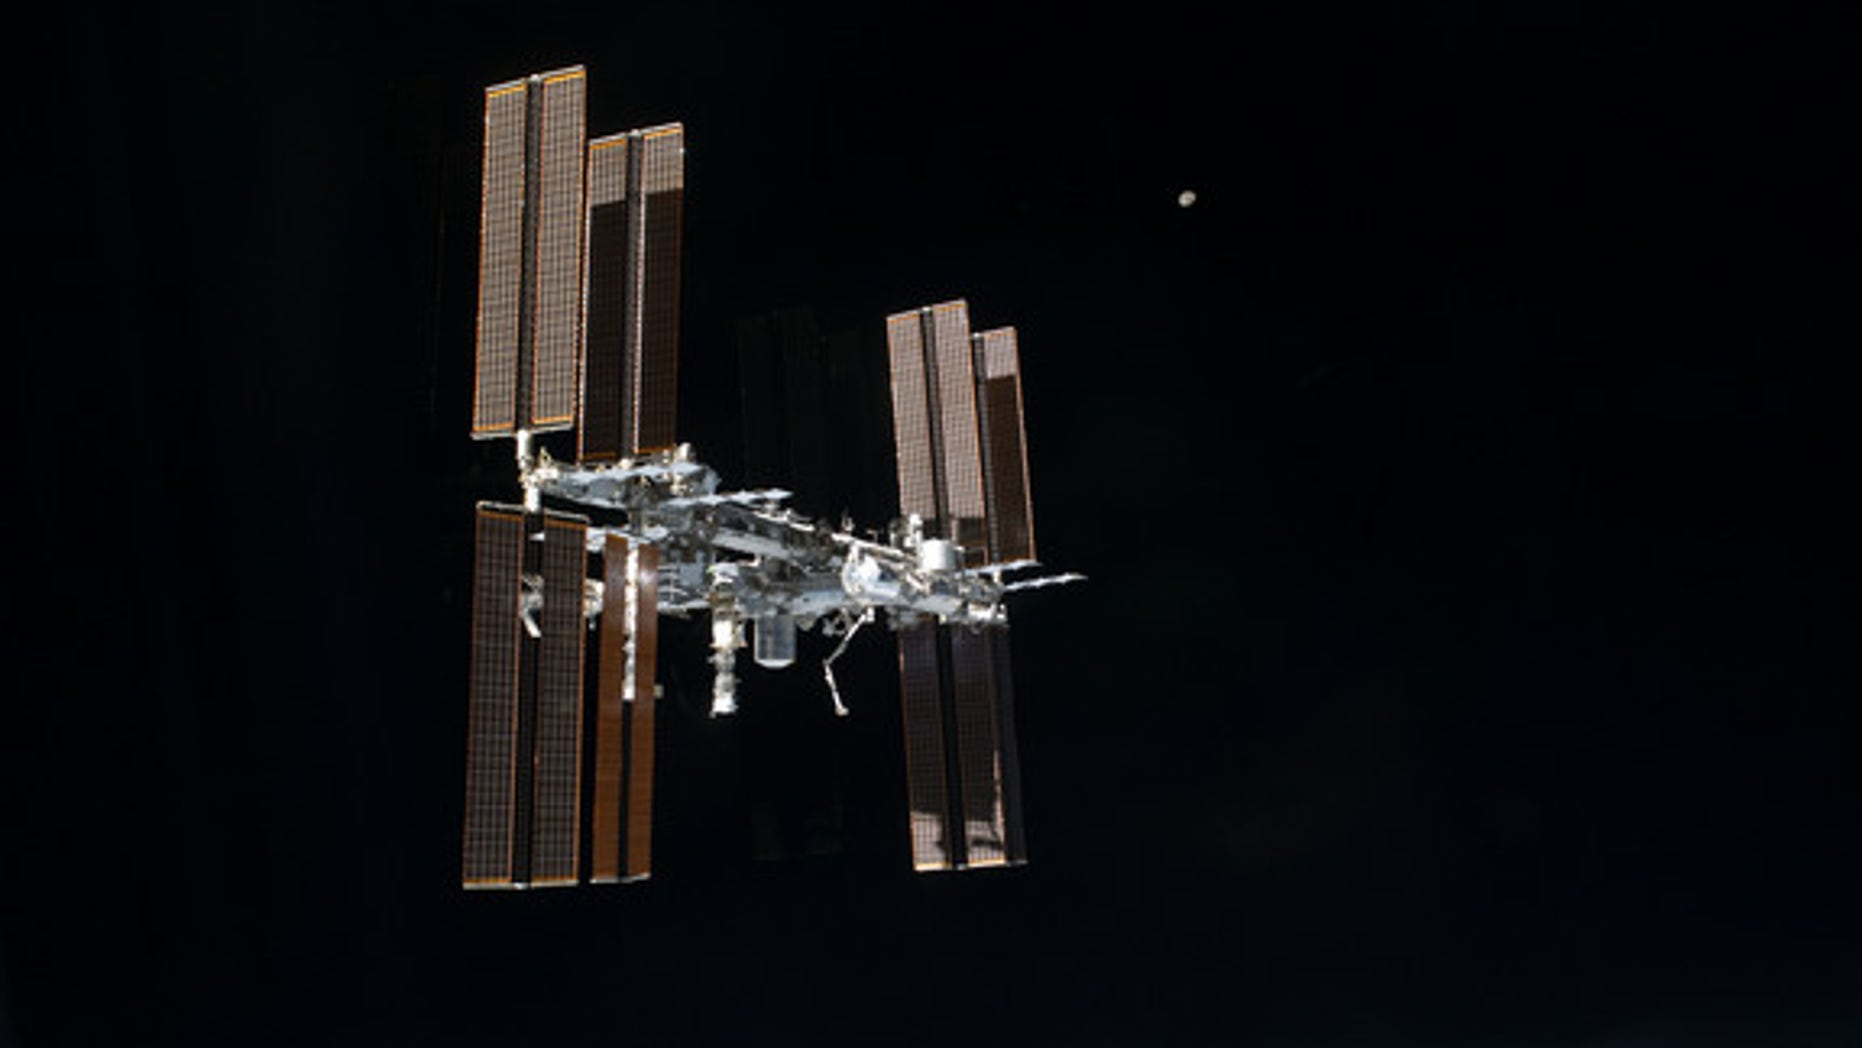 This picture of the International Space Station and the moon was photographed from the space shuttle Atlantis just after the two spacecraft undocked on July 19, 2011, during NASA's final shuttle mission STS-135.